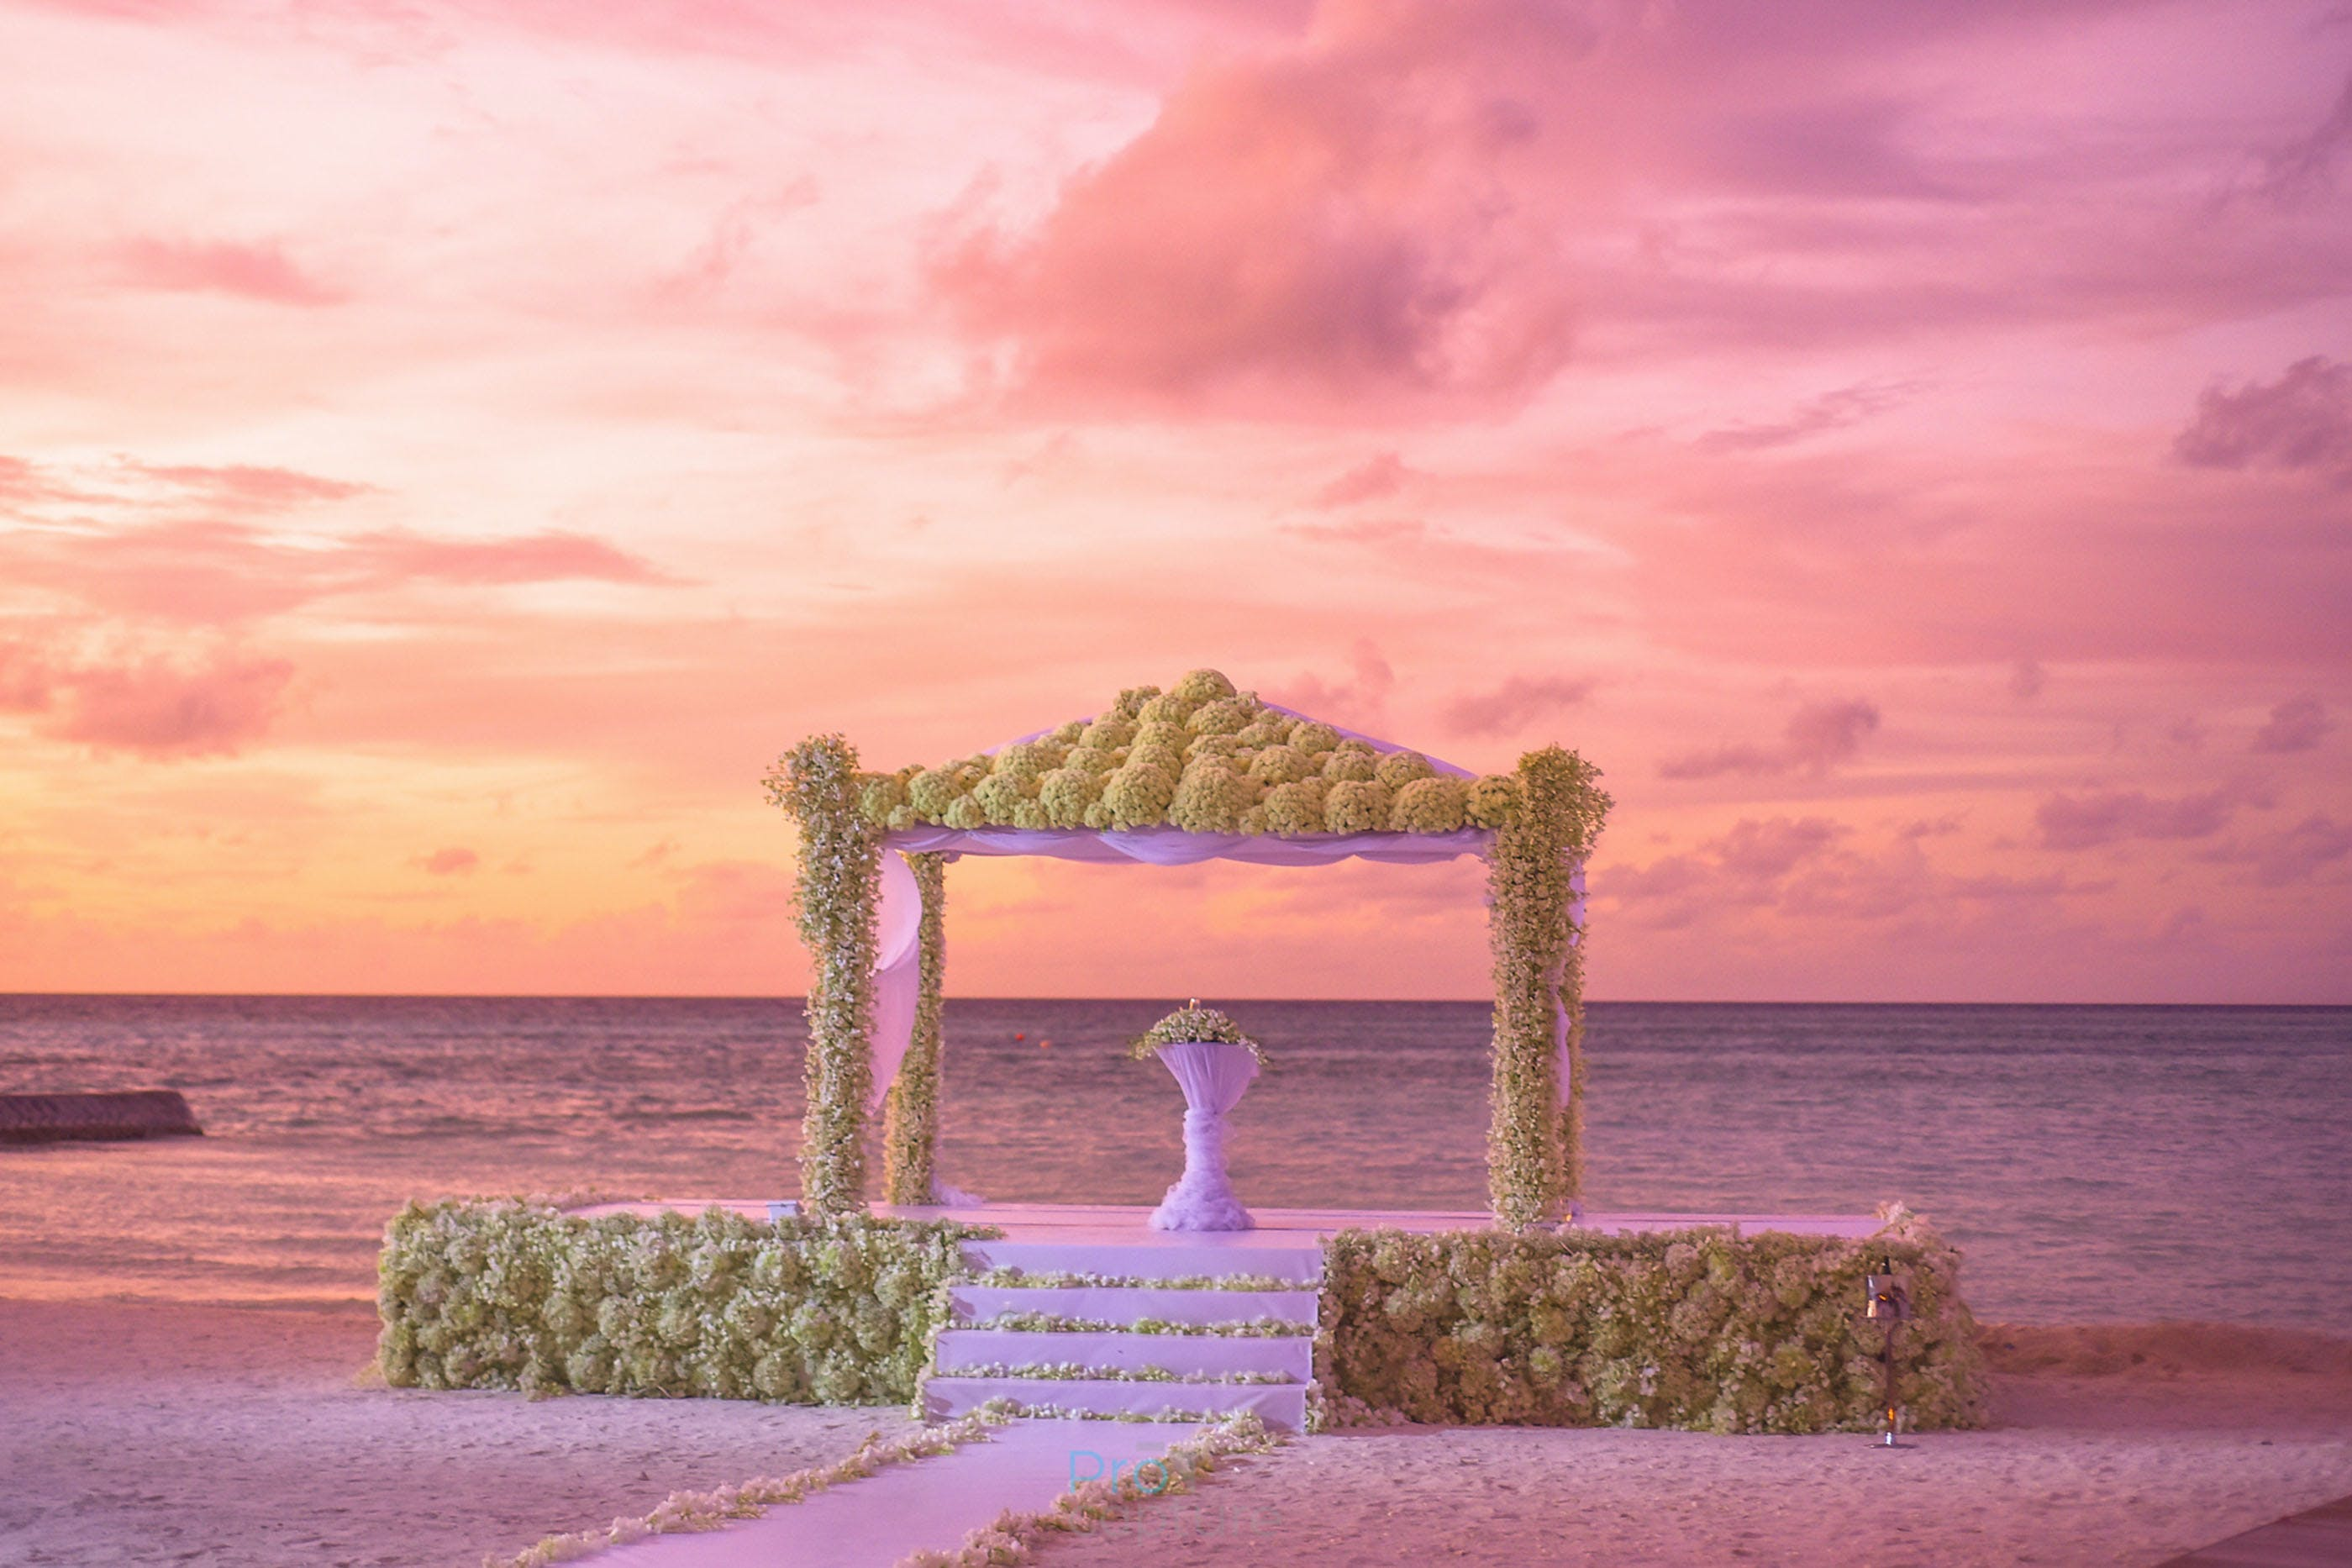 White Table Under Brown Concrete Gazebo Along Body of Water Under White Orange and Pink Cloudy Sky during Sunset